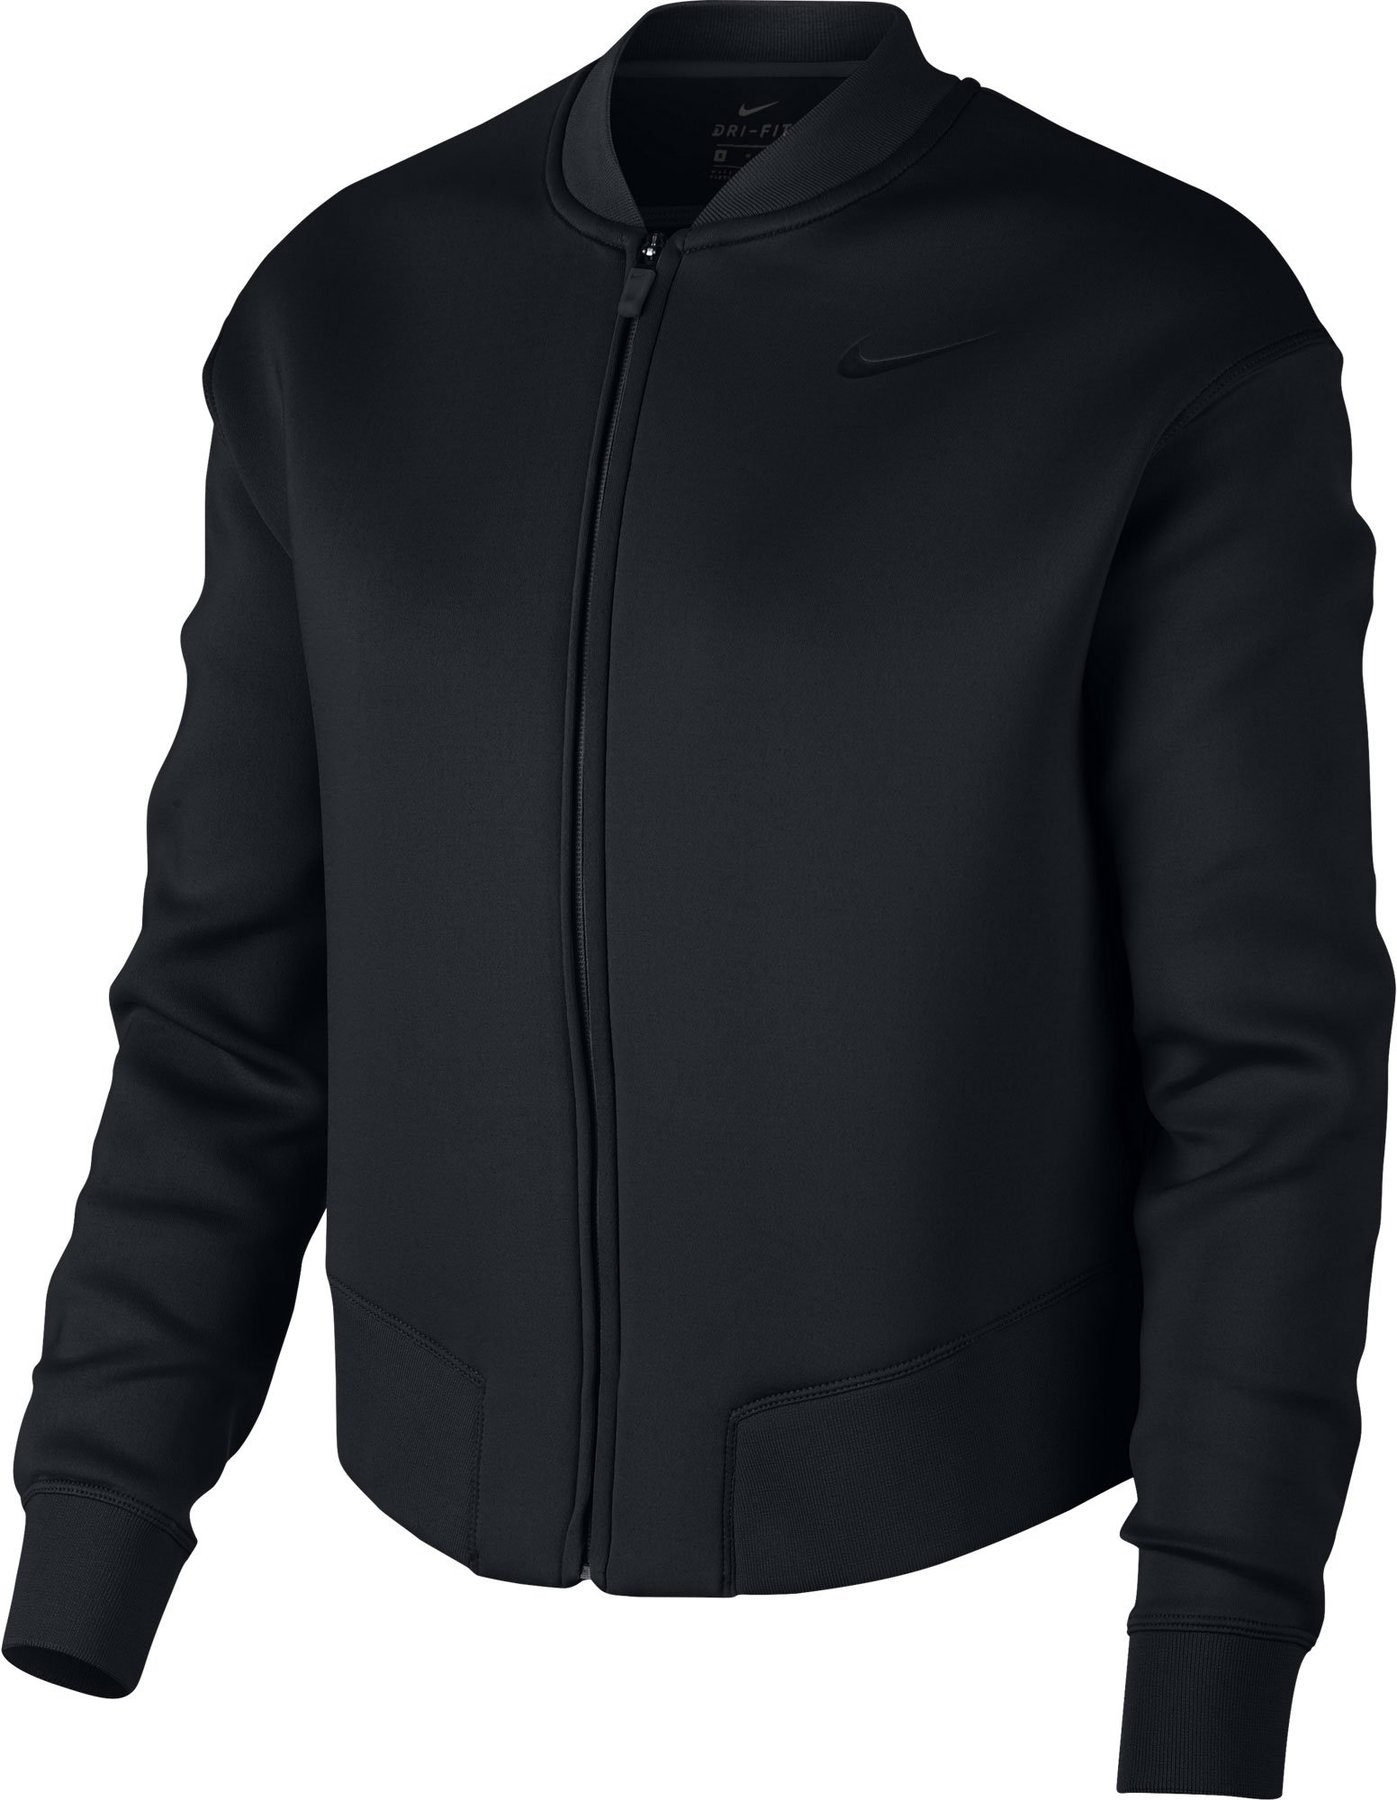 Nike Trainingsjacke Damen